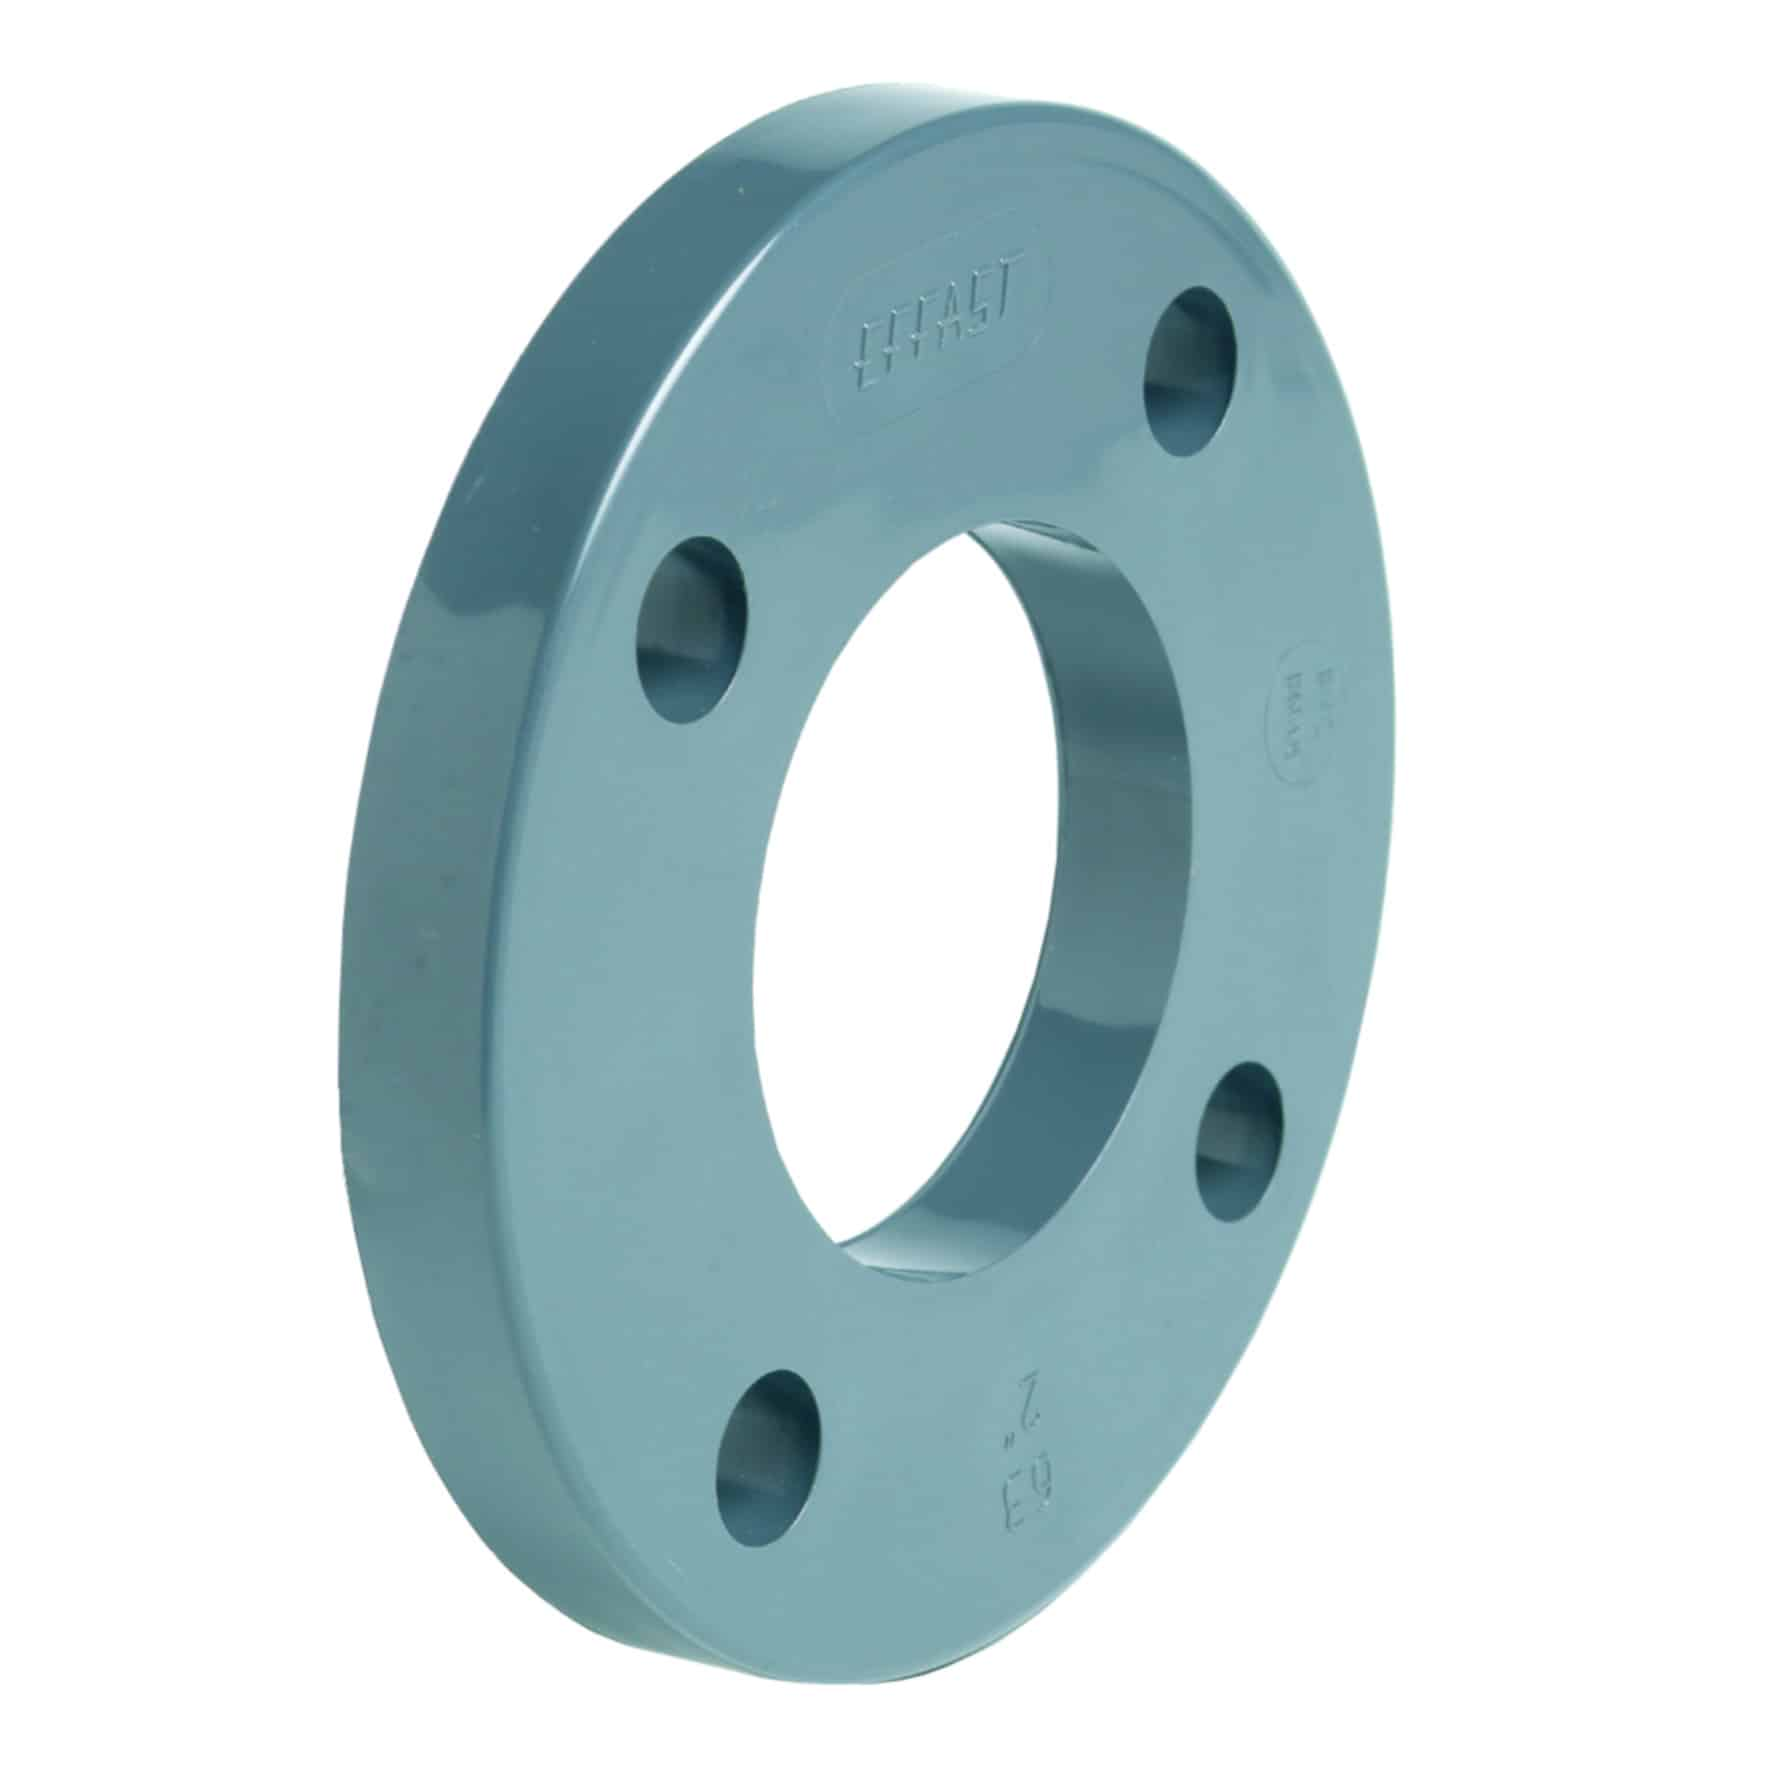 PVC-U backing ring EN/ISO/DIN - EFFAST - 100% Made in Italy